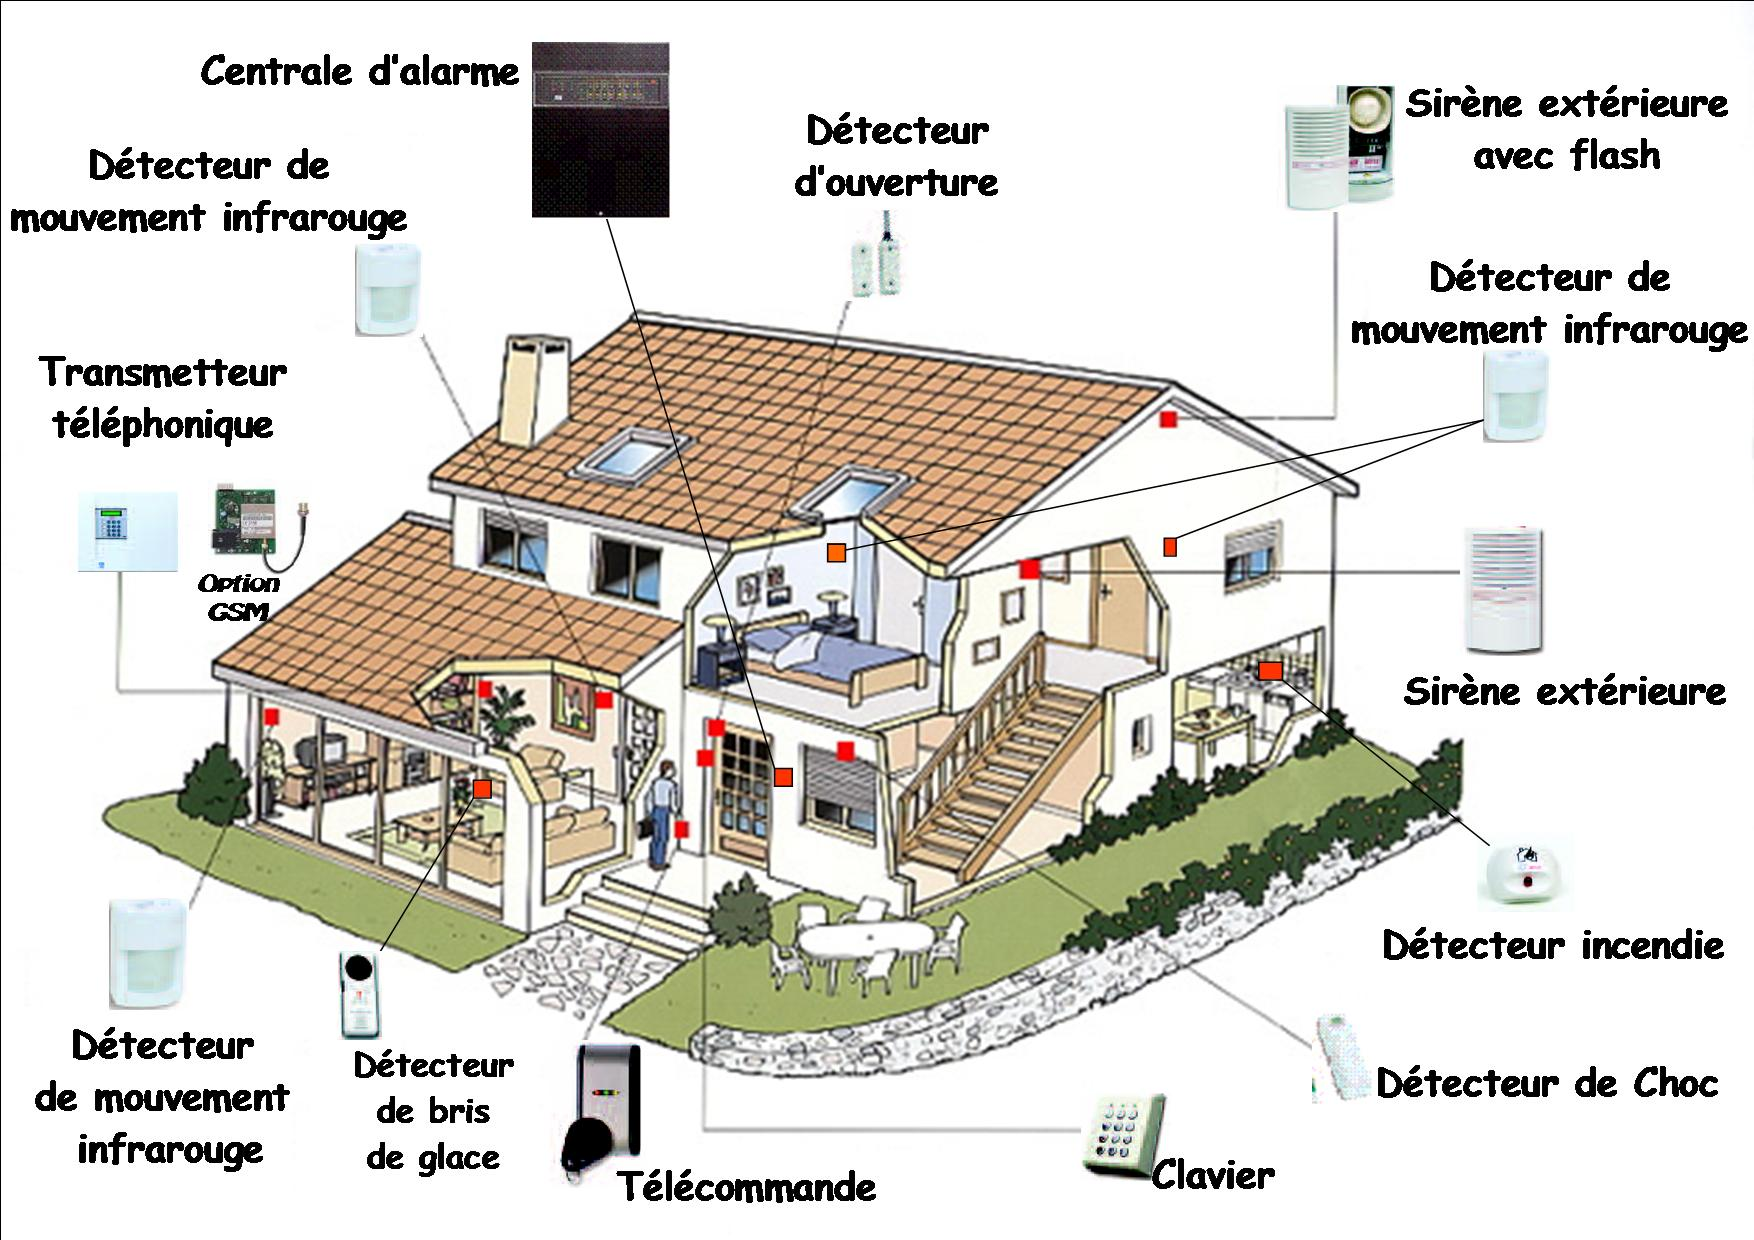 Installationdépannagerénovationmaintenanceélectriqueélectricité - Faire l electricite de sa maison